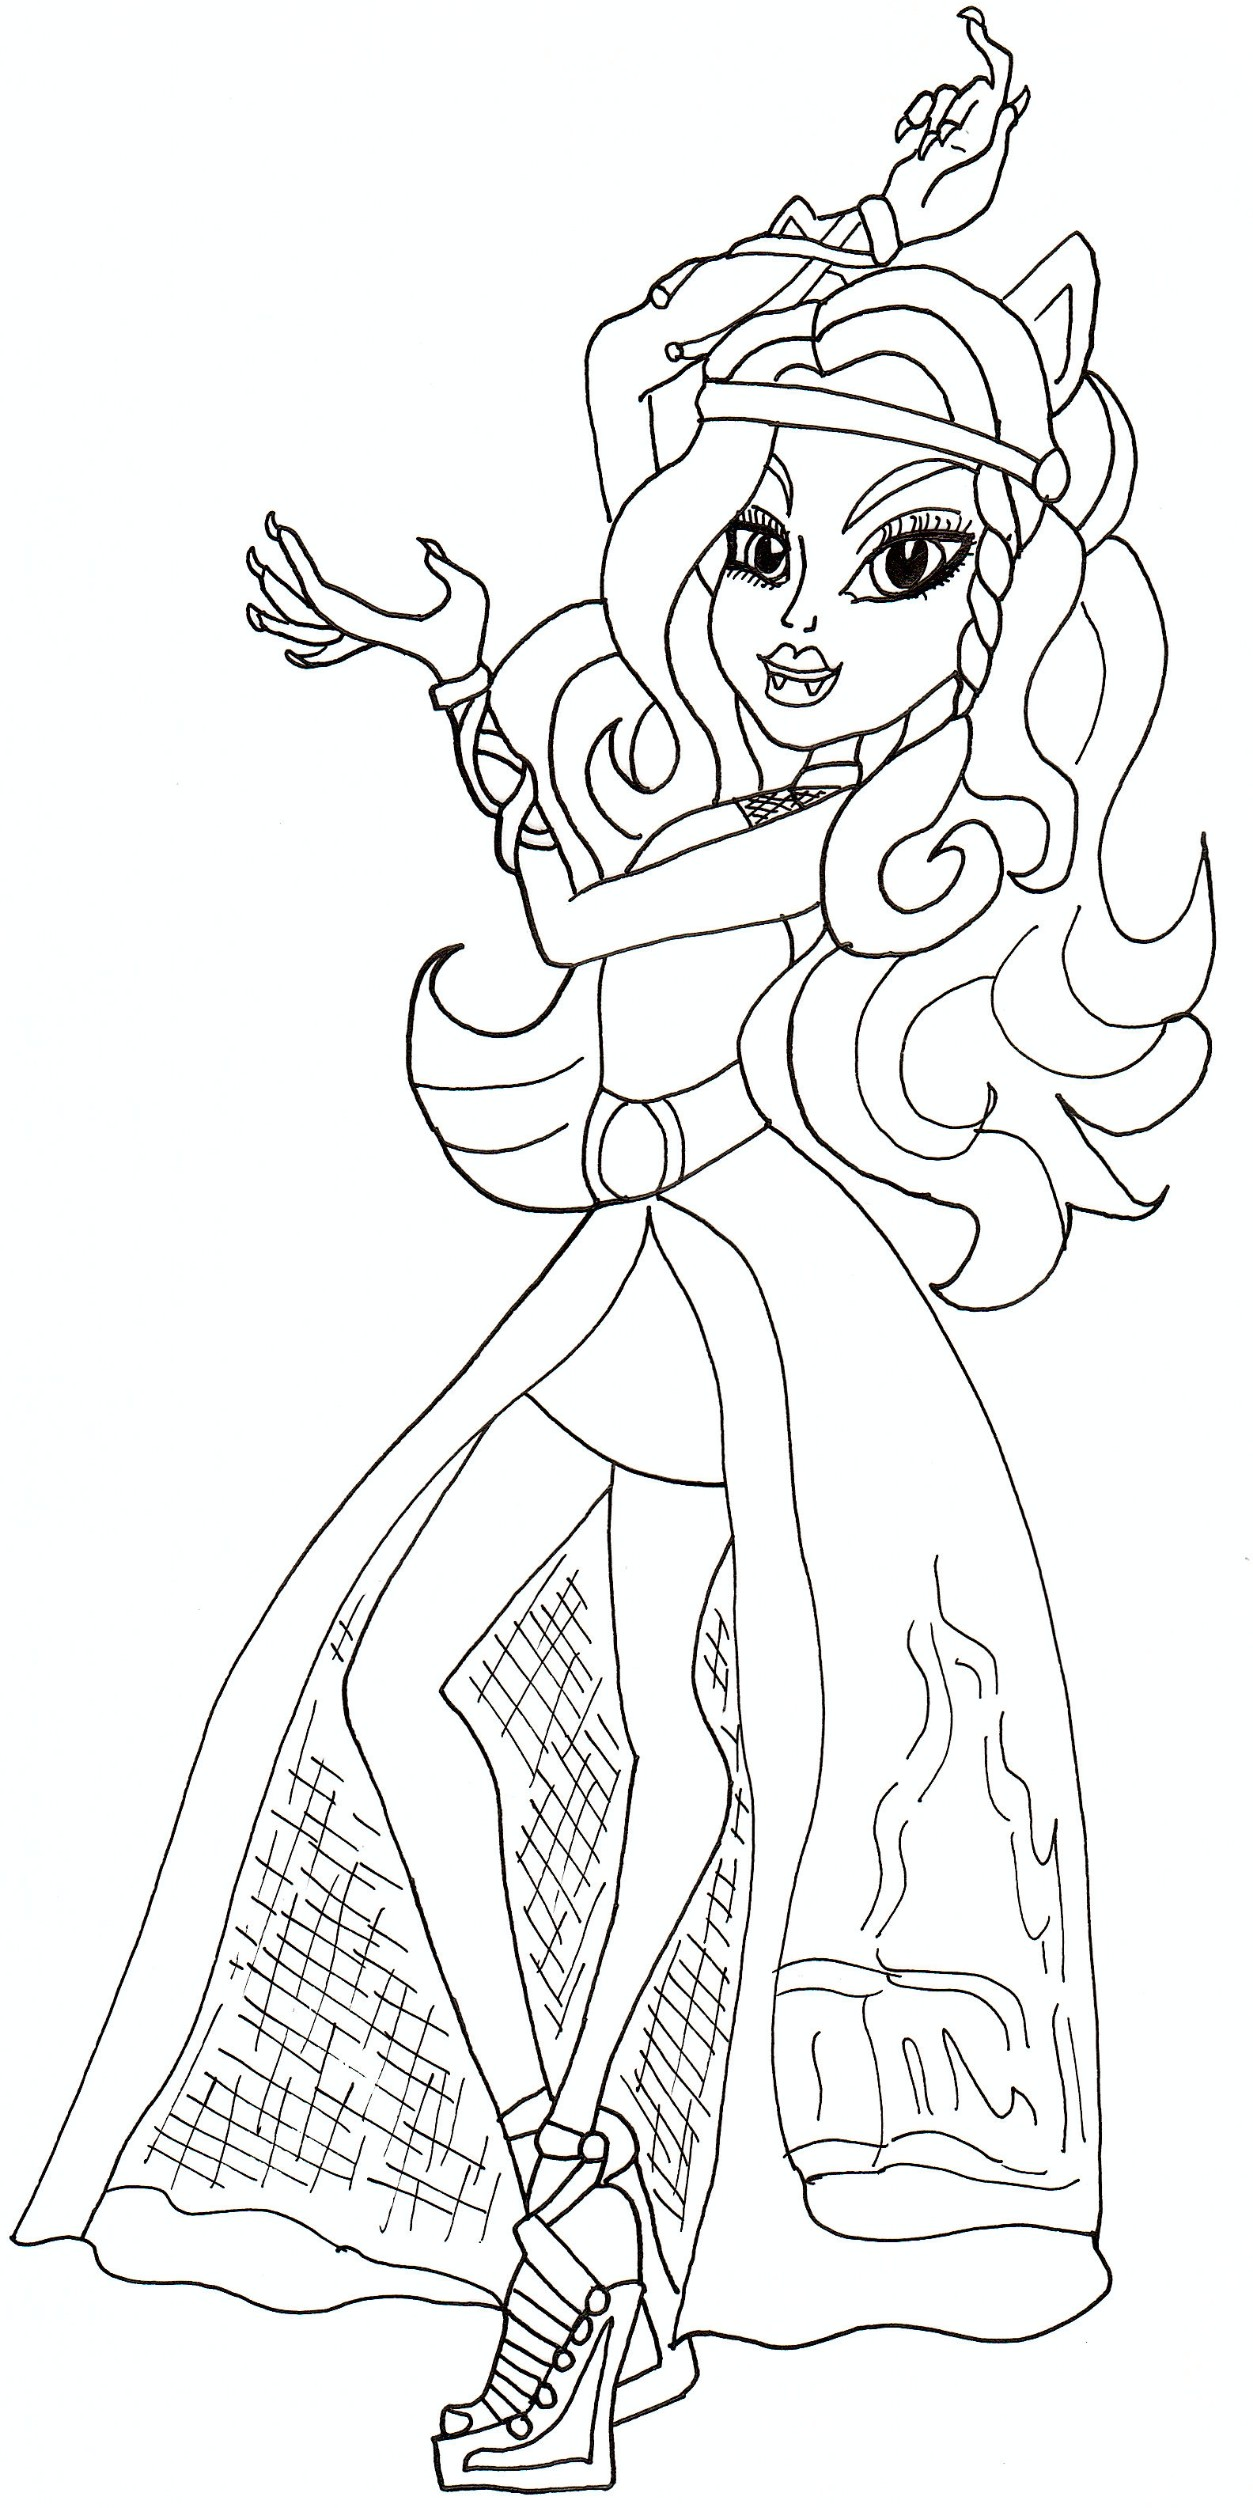 The gallery for --> Monster High Coloring Pages 13 Wishes